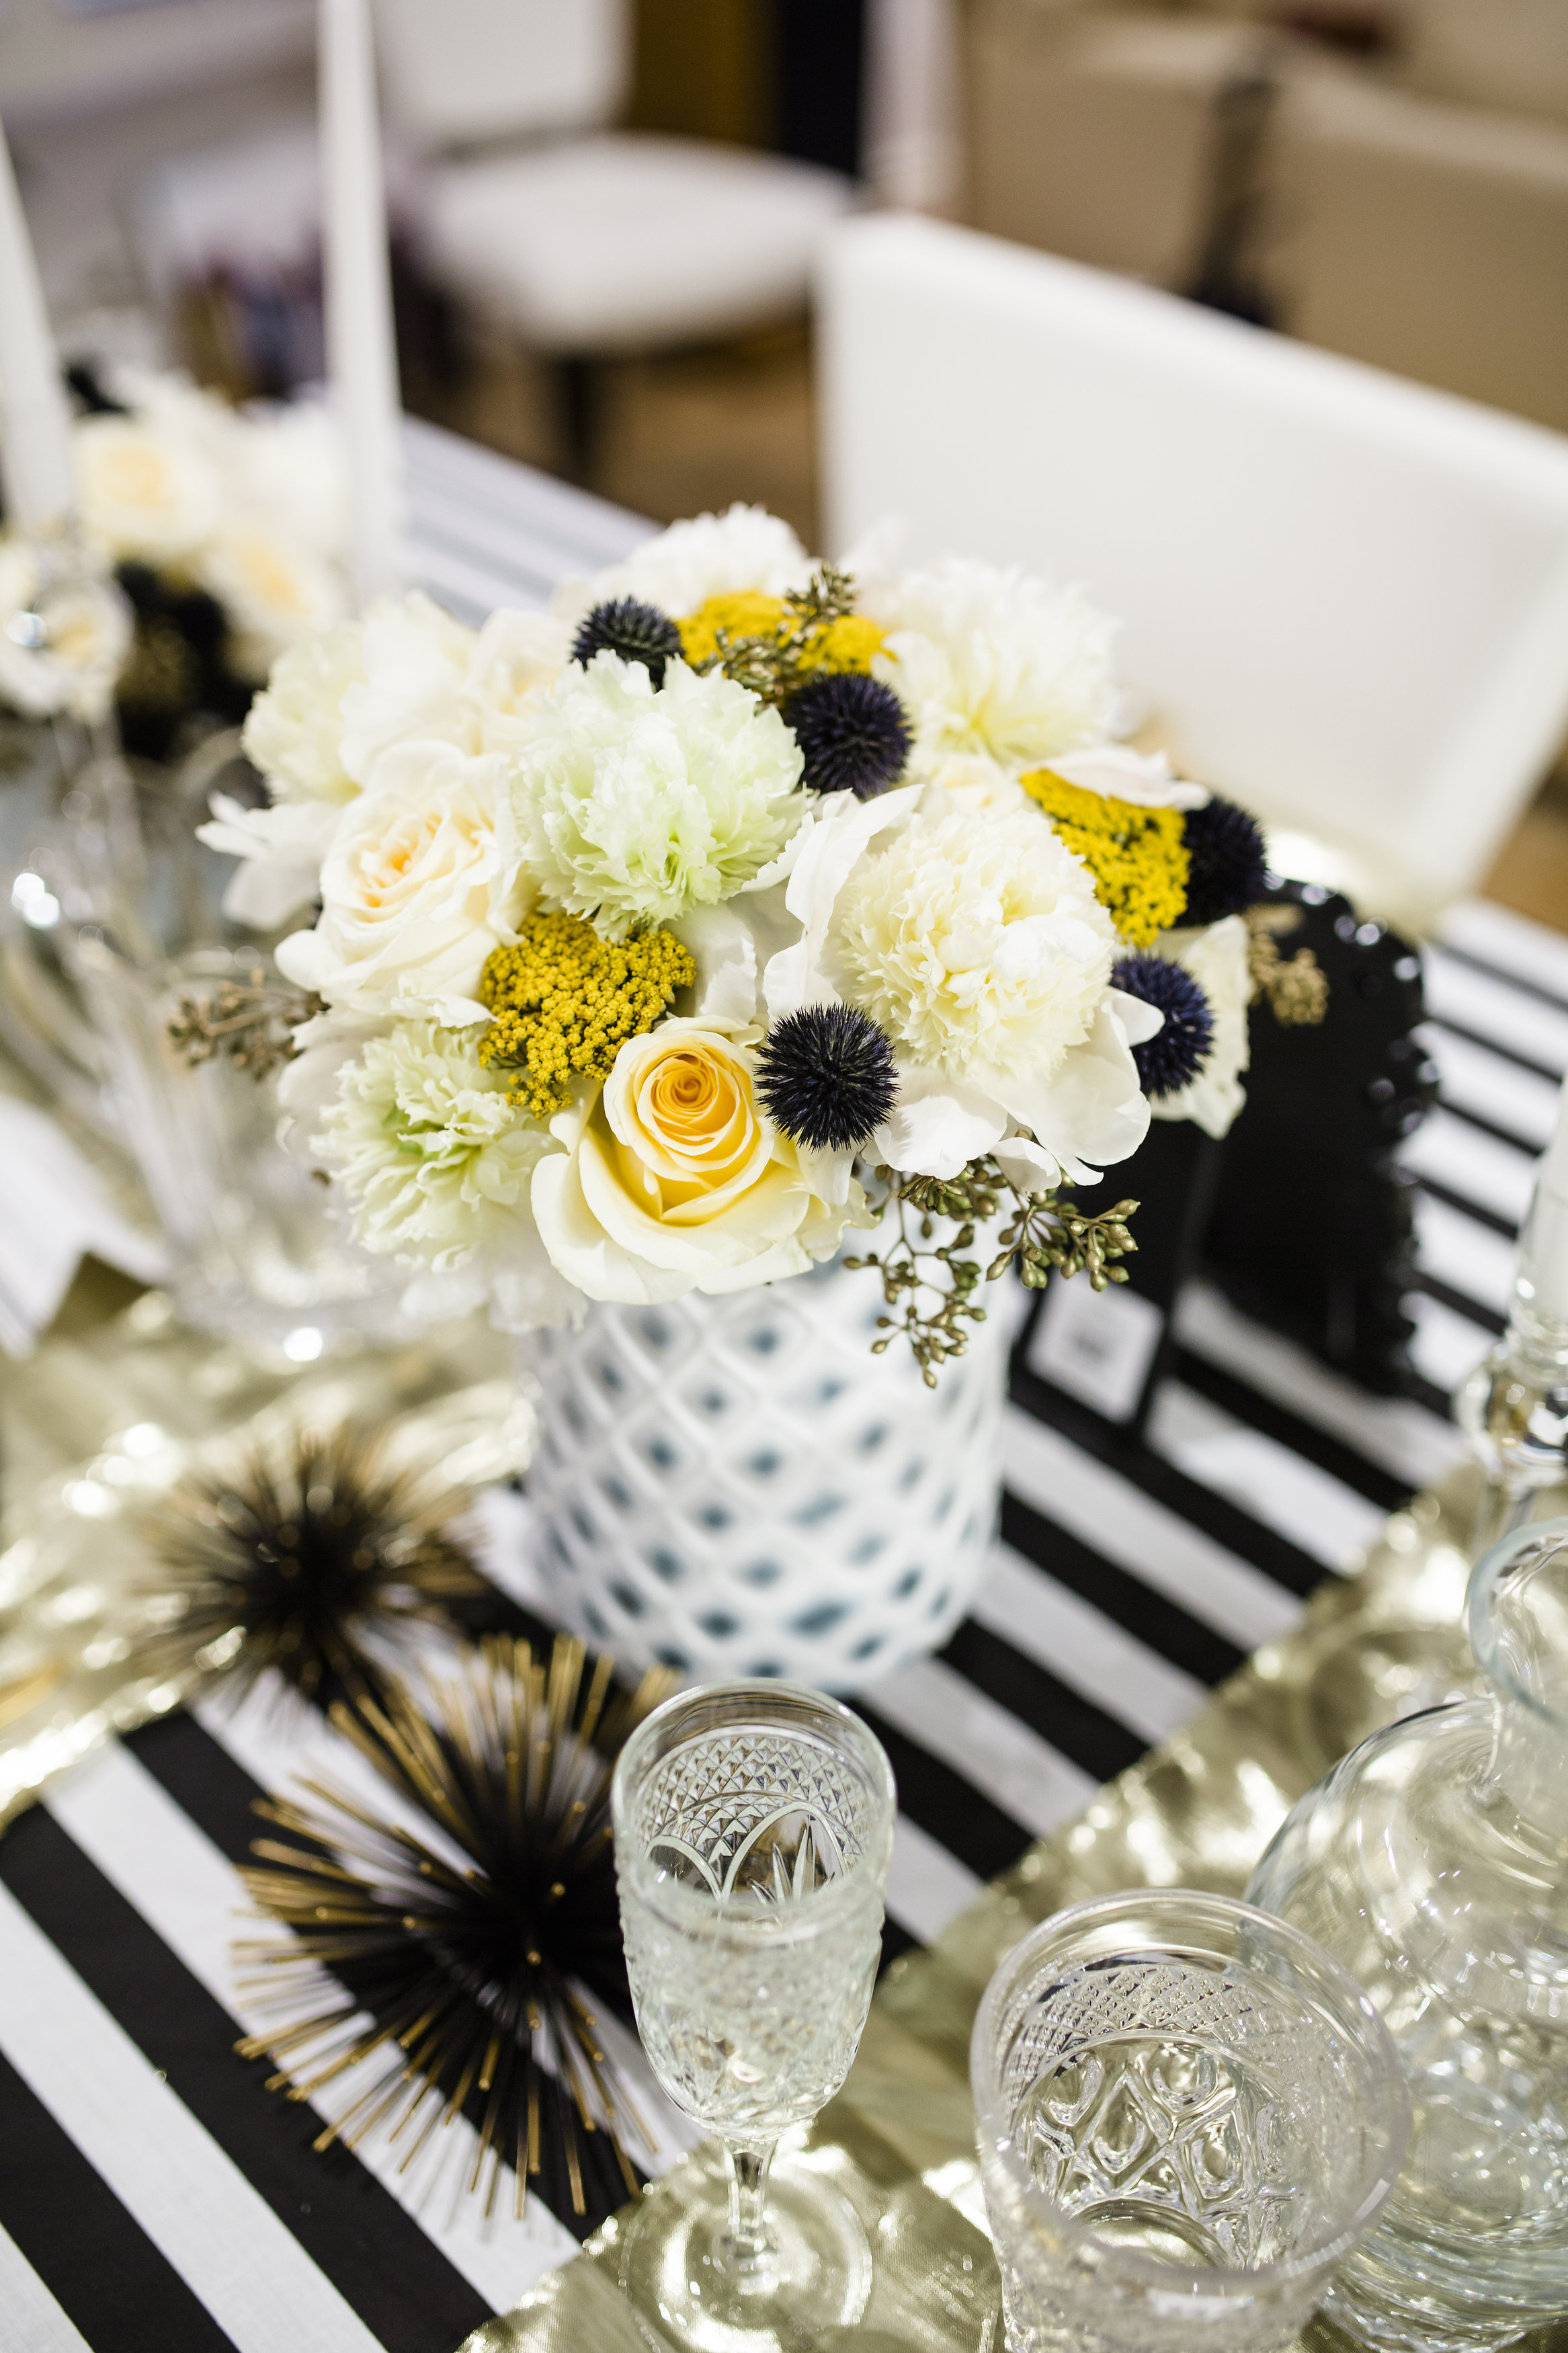 Black and gold flower centerpieces best image of flower mojoimage white and gold flower centerpieces 2018 images pictures pink mightylinksfo